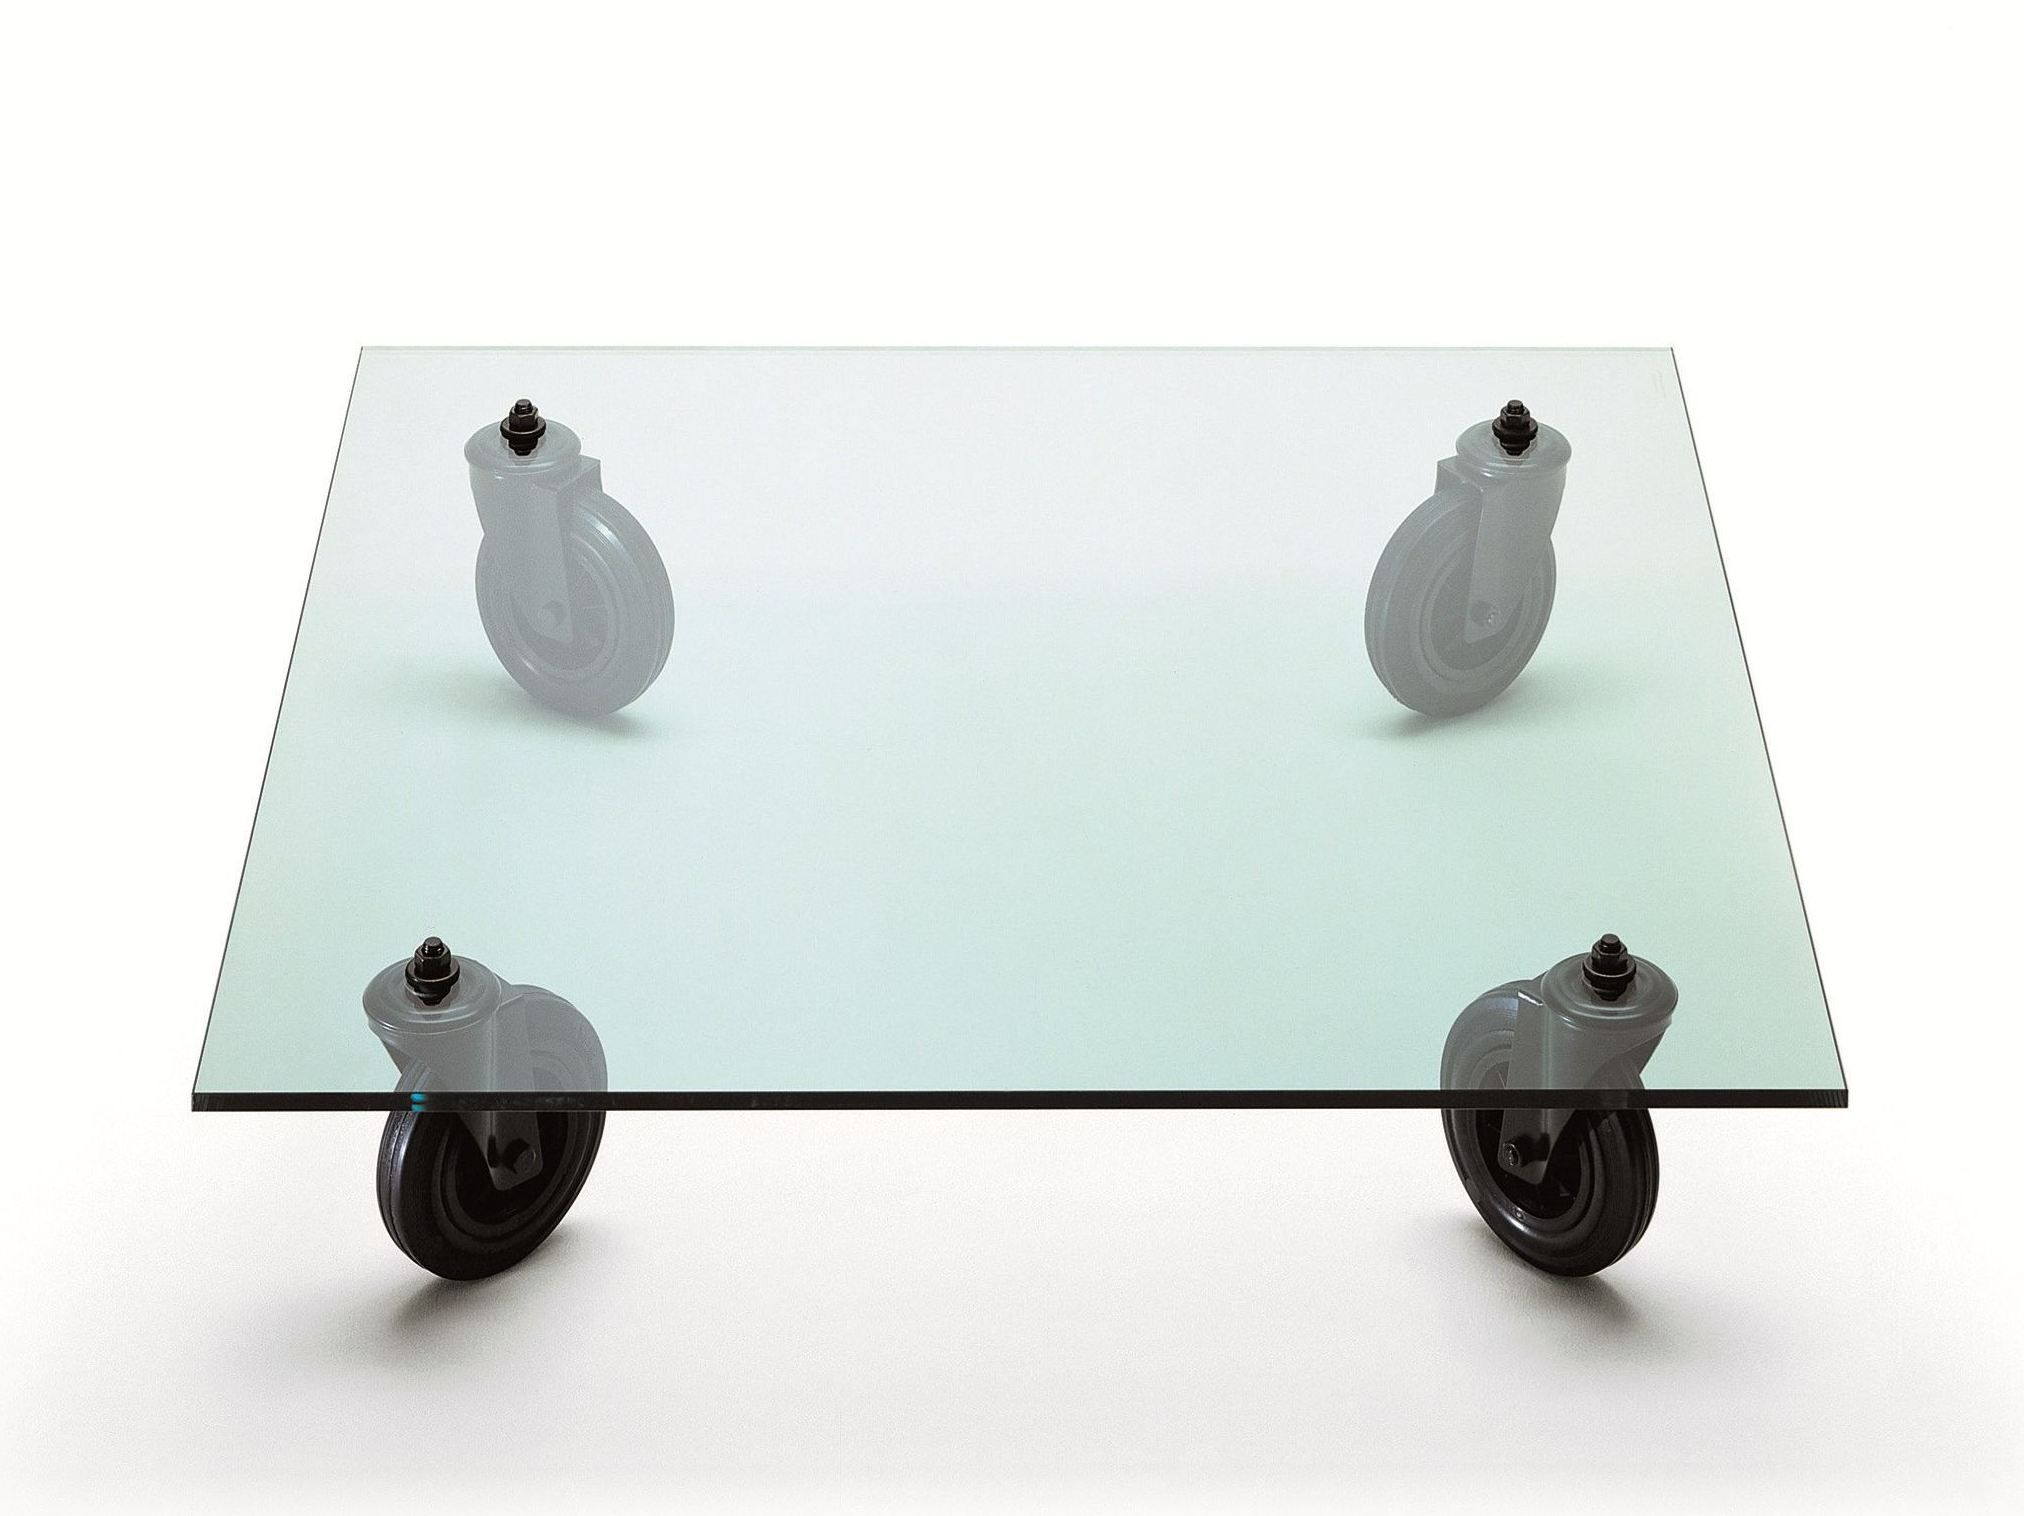 Buy Online Tavolo Con Ruote By Fontanaarte Square Float Glass Coffee Table With Casters Design Coffee Table Coffee Table With Wheels Coffee Table With Casters [ 1516 x 2024 Pixel ]